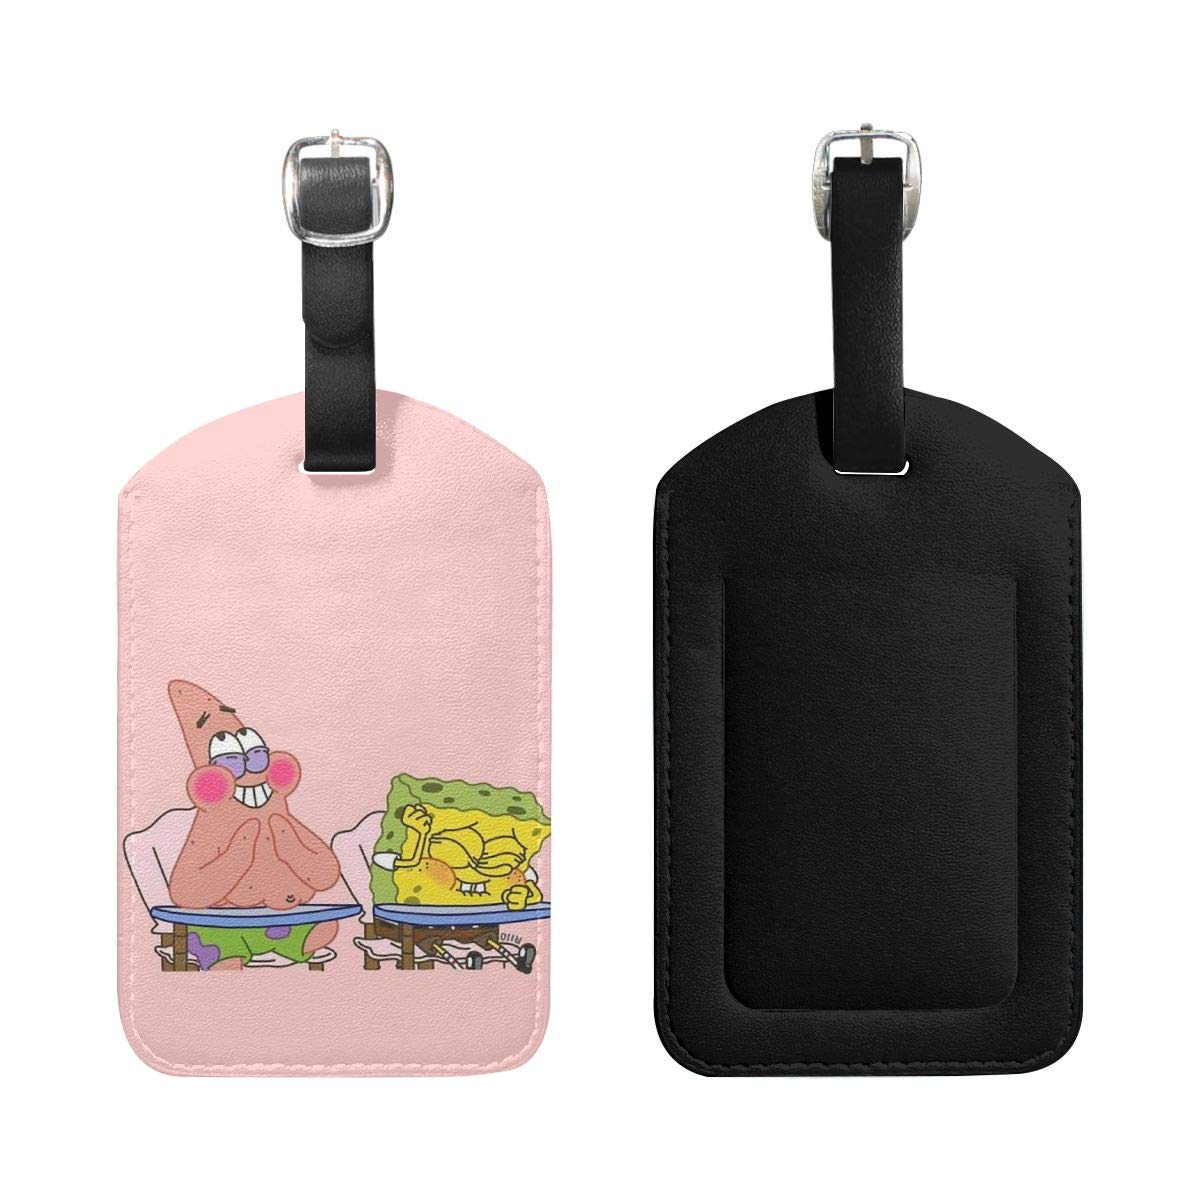 Set of 2 PU Leather Luggage Tags Spongebob Squarepants and Pickstar Suitcase Labels Bag Adjustable Leather Strap Travel Accessories